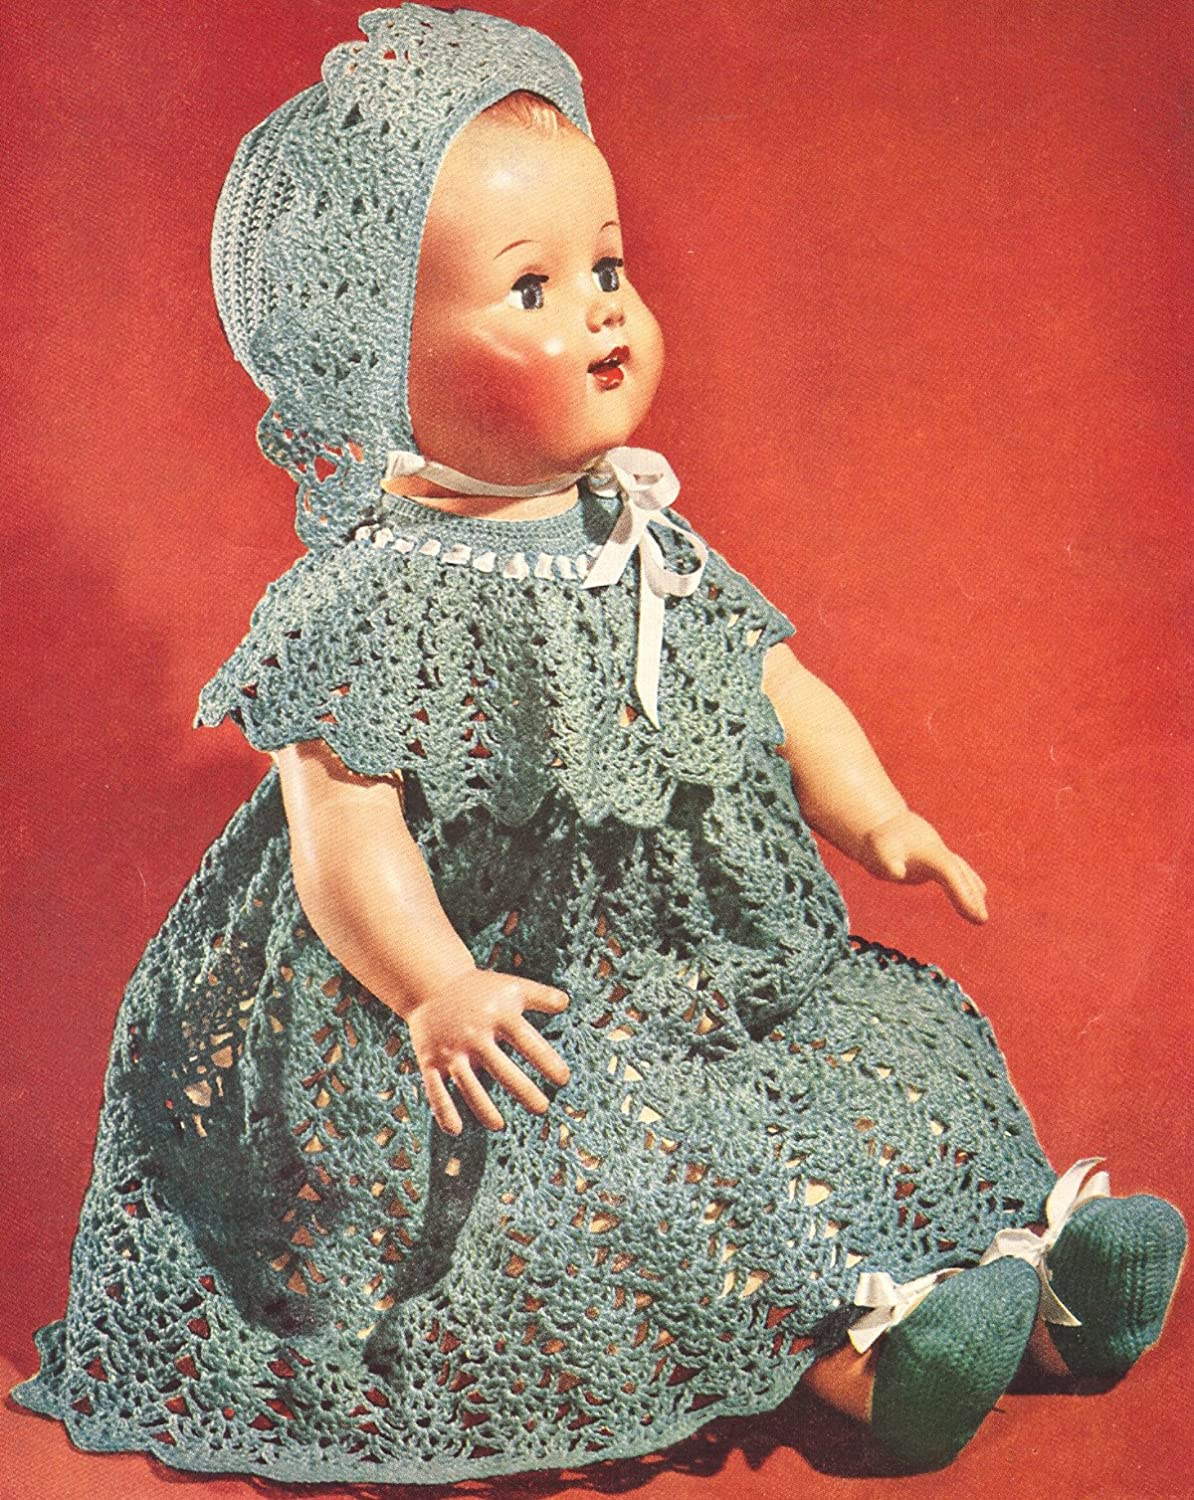 Amazon Com Vintage Crochet Pattern To Make Baby Doll Dress Hat